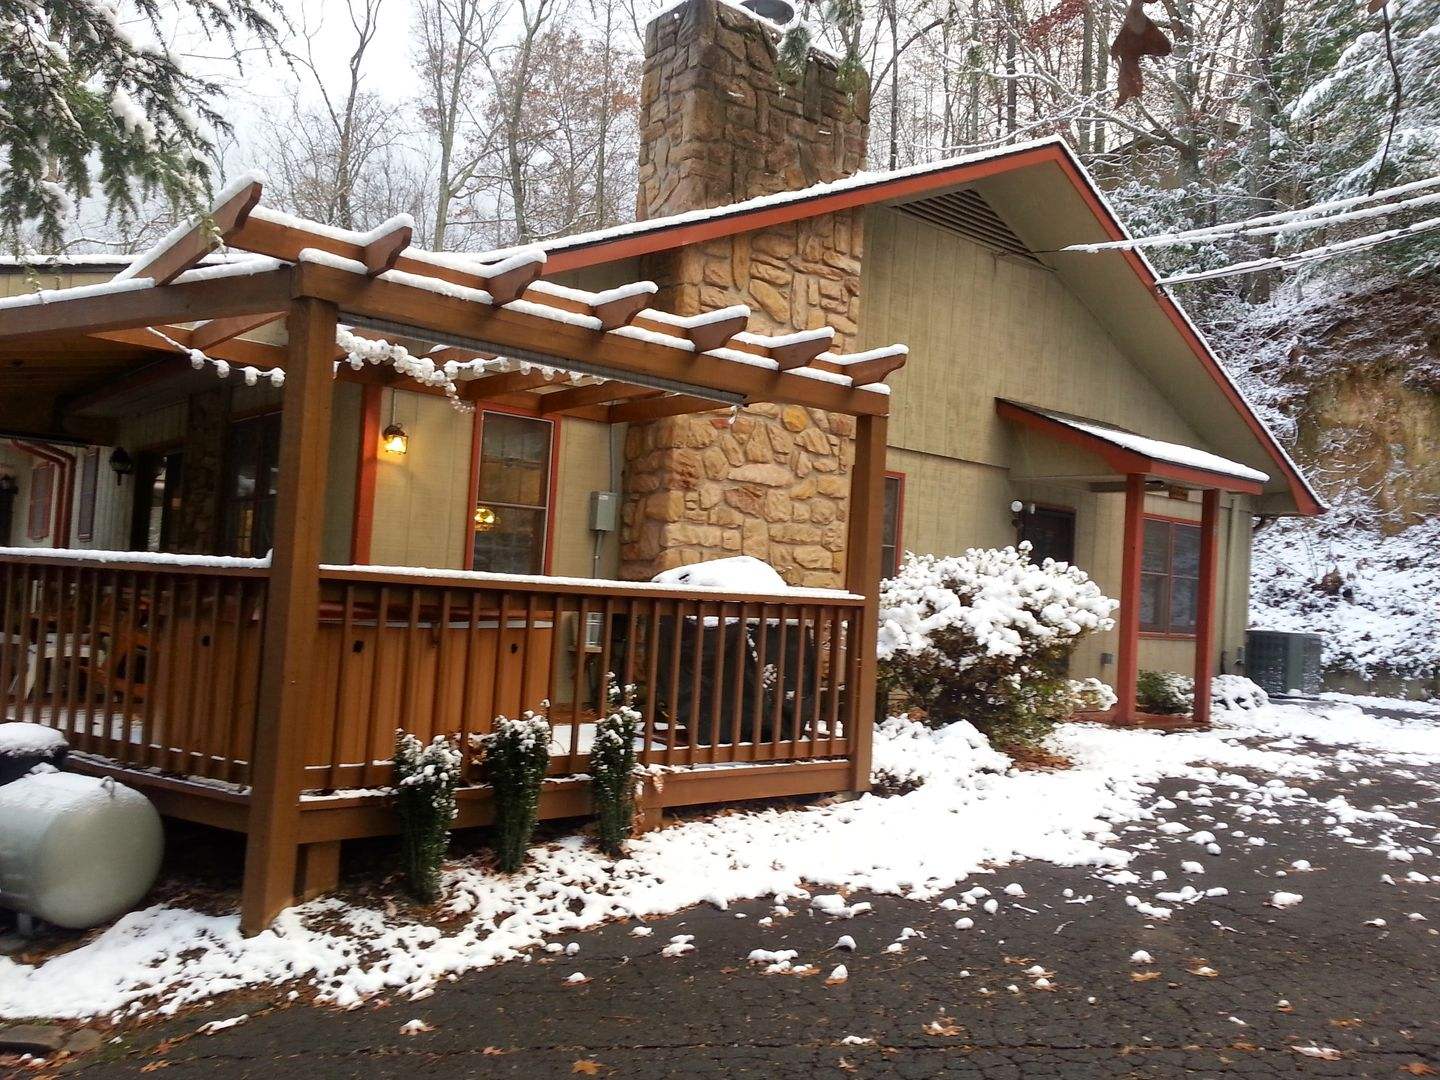 cabins rentals carolina properties cabin valley maggie north front overlook lodge by nc owner gallery bison